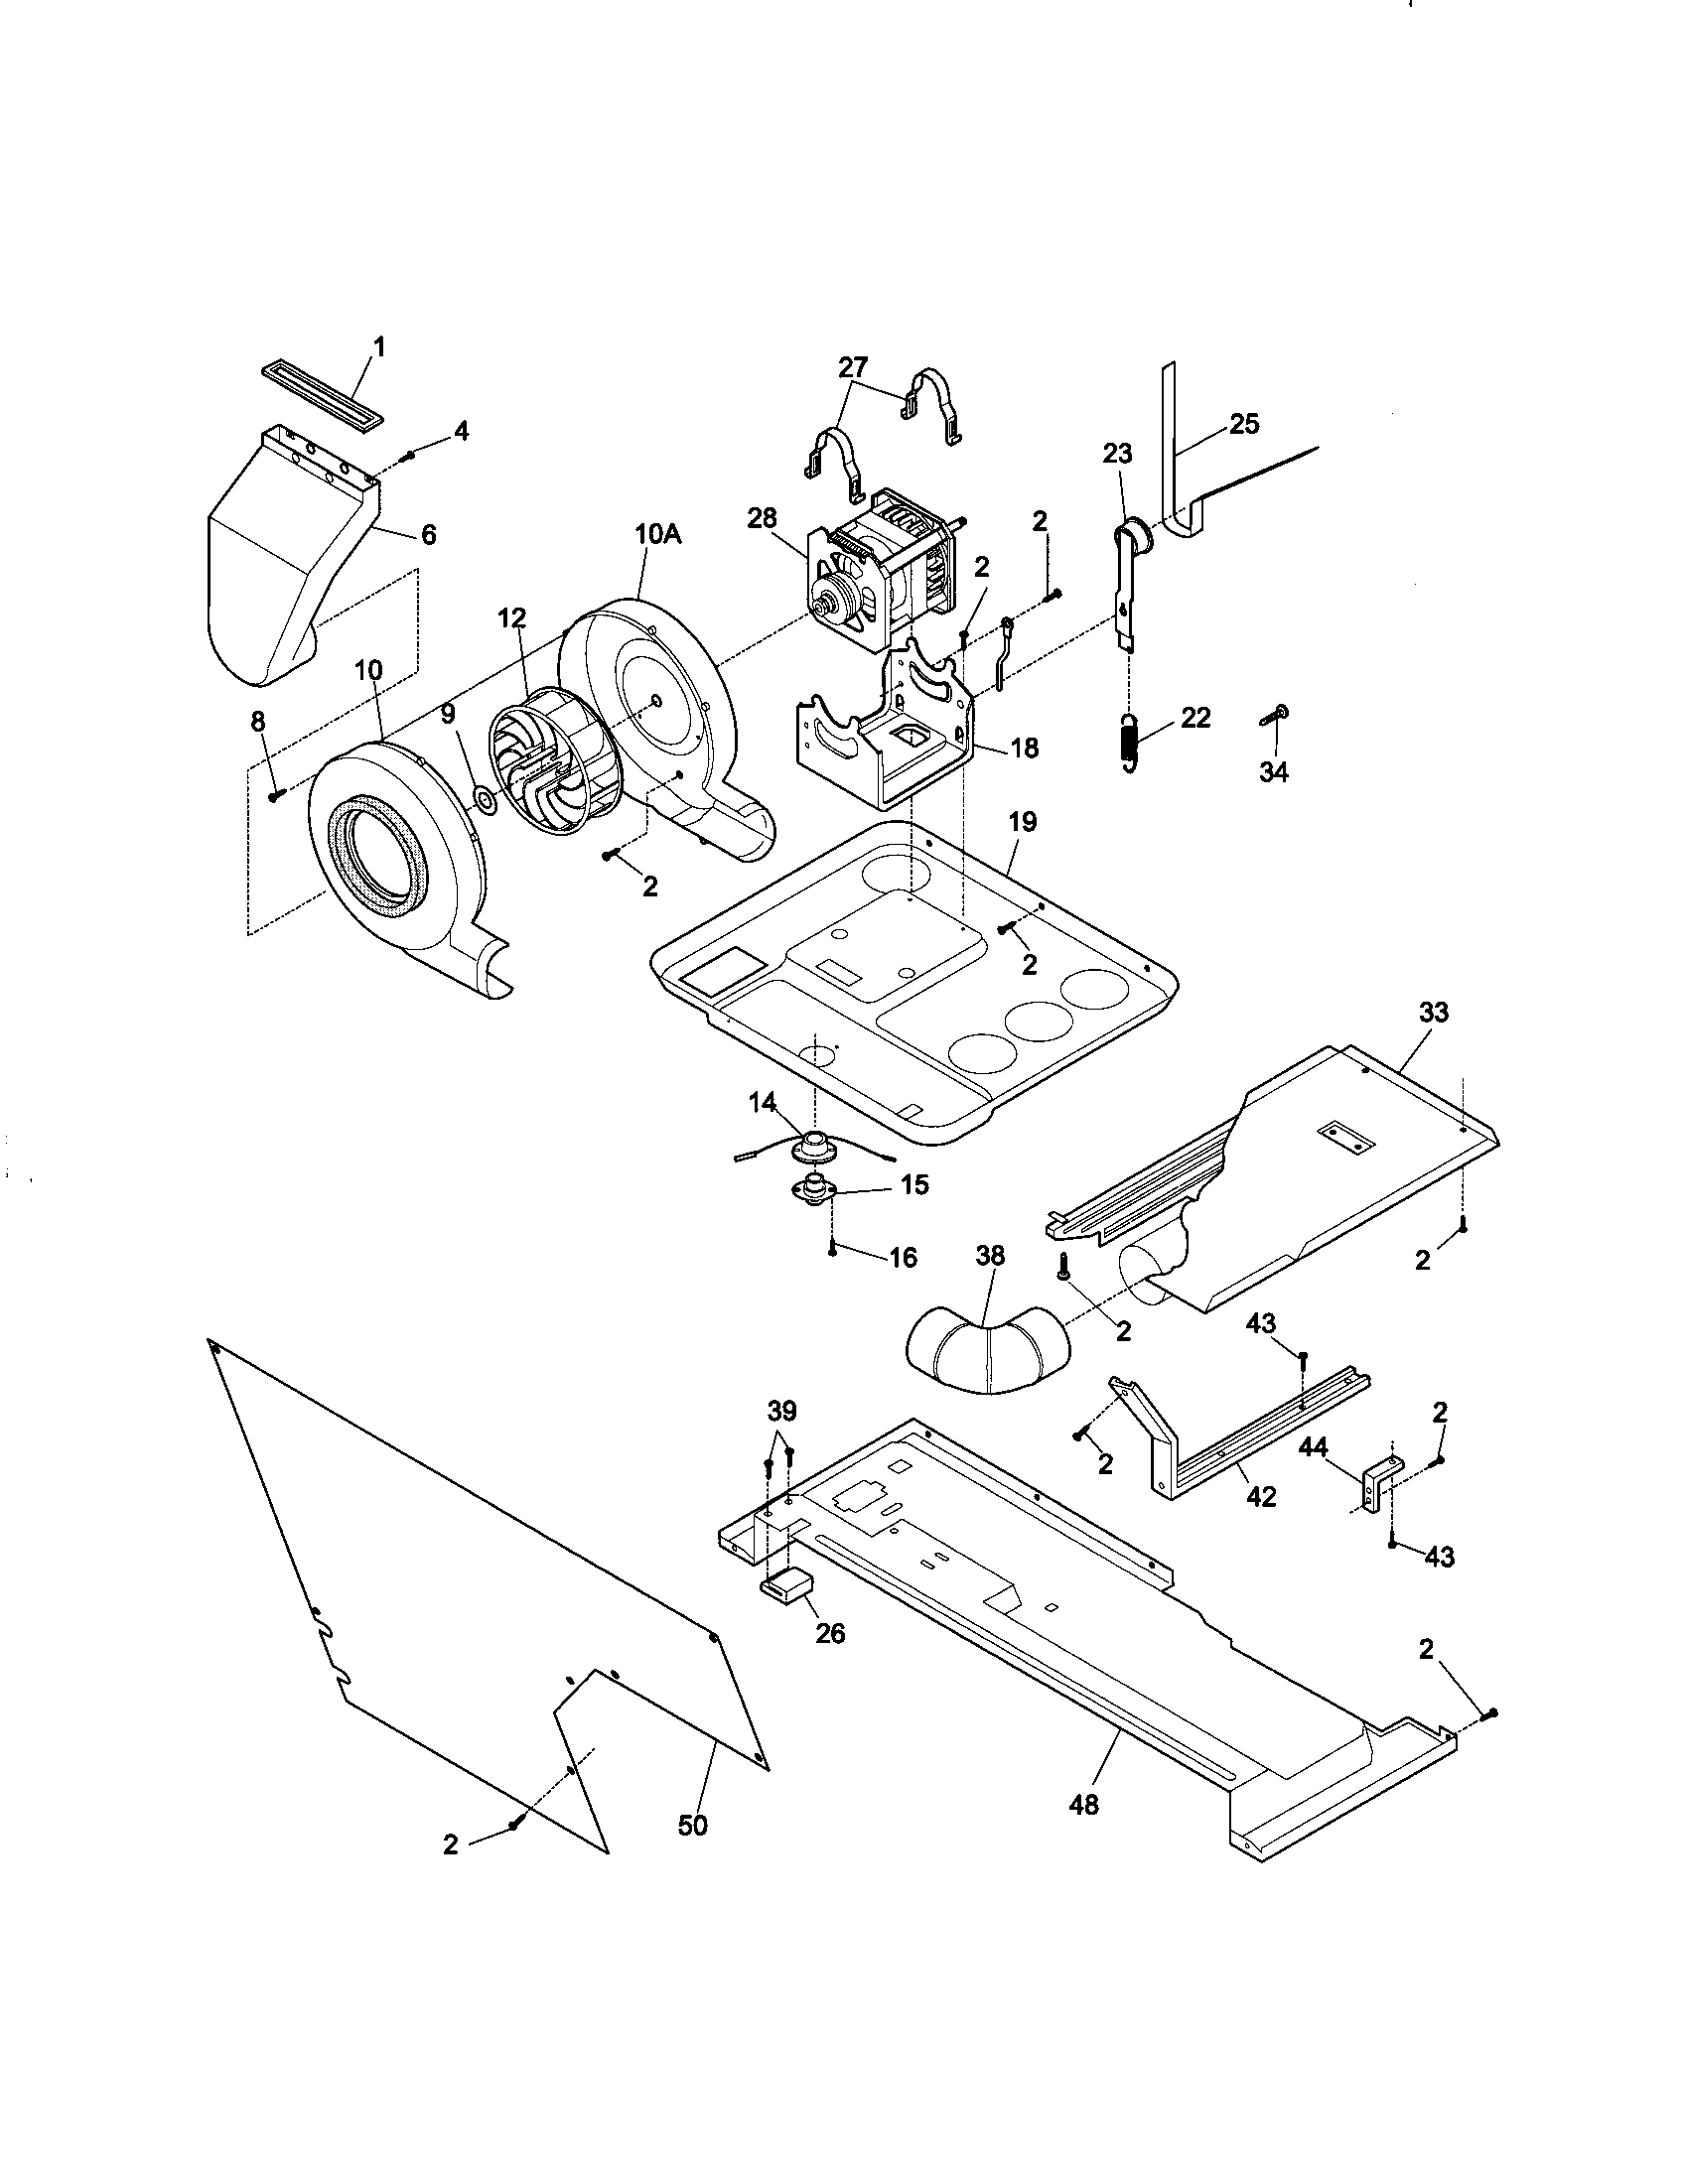 BLOWER AND BASE Diagram & Parts List for Model 41798702891